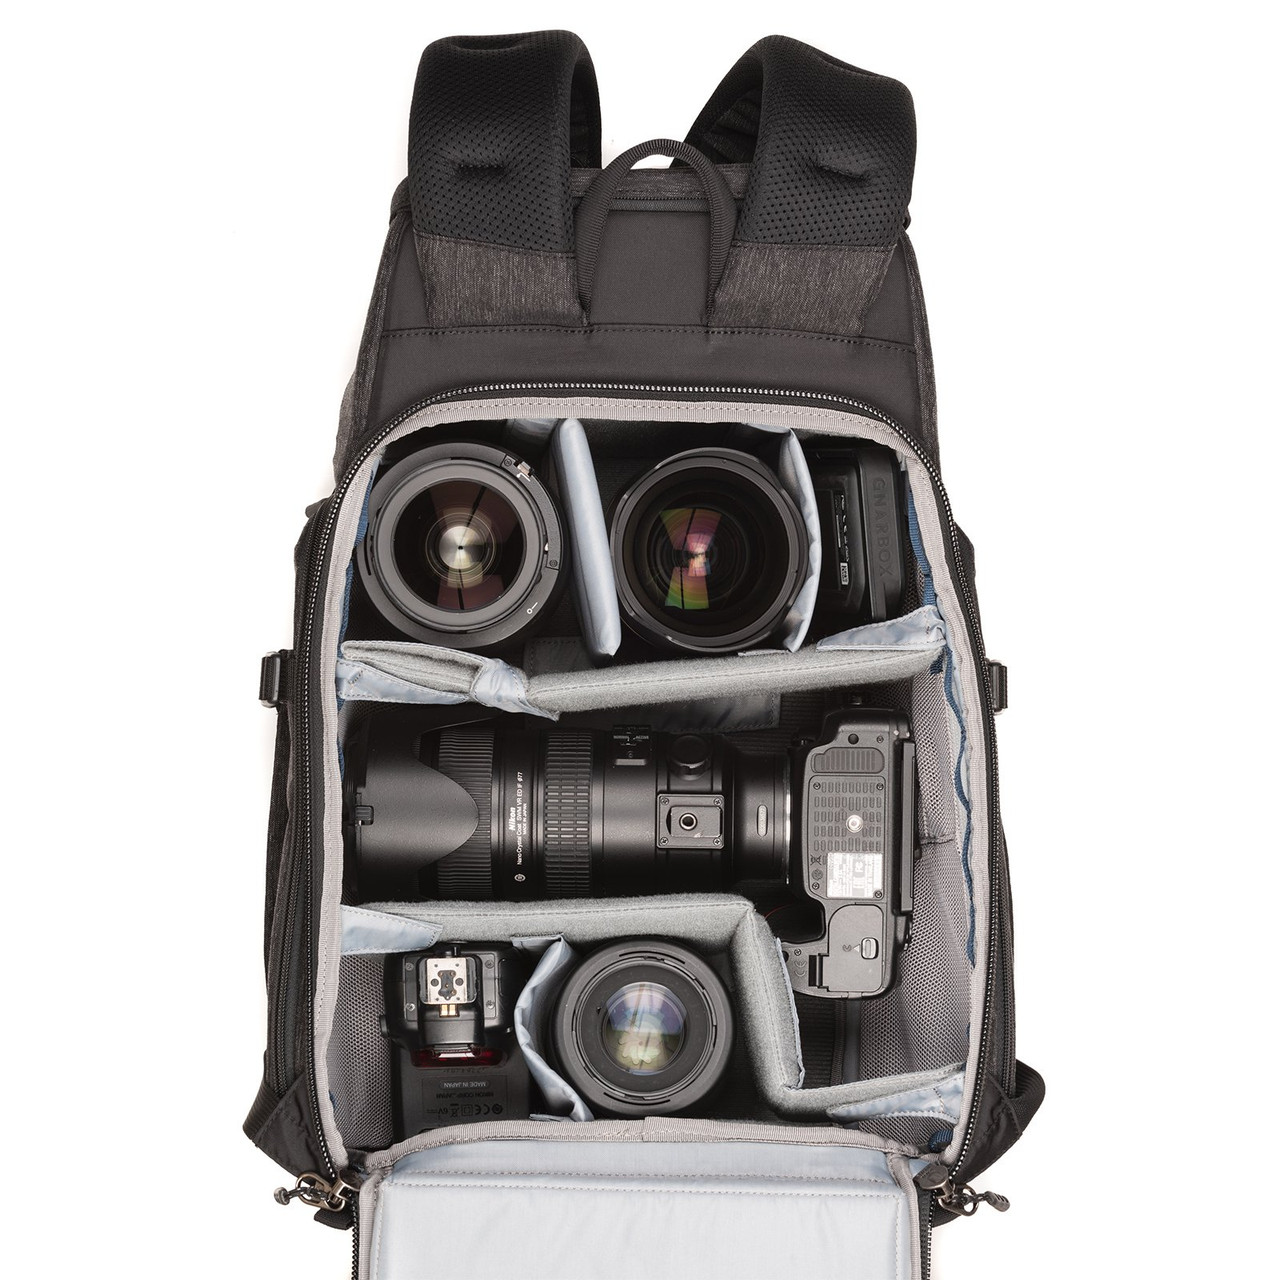 THINK TANK PHOTO PRO URBAN ACCESS BACKPACK 15